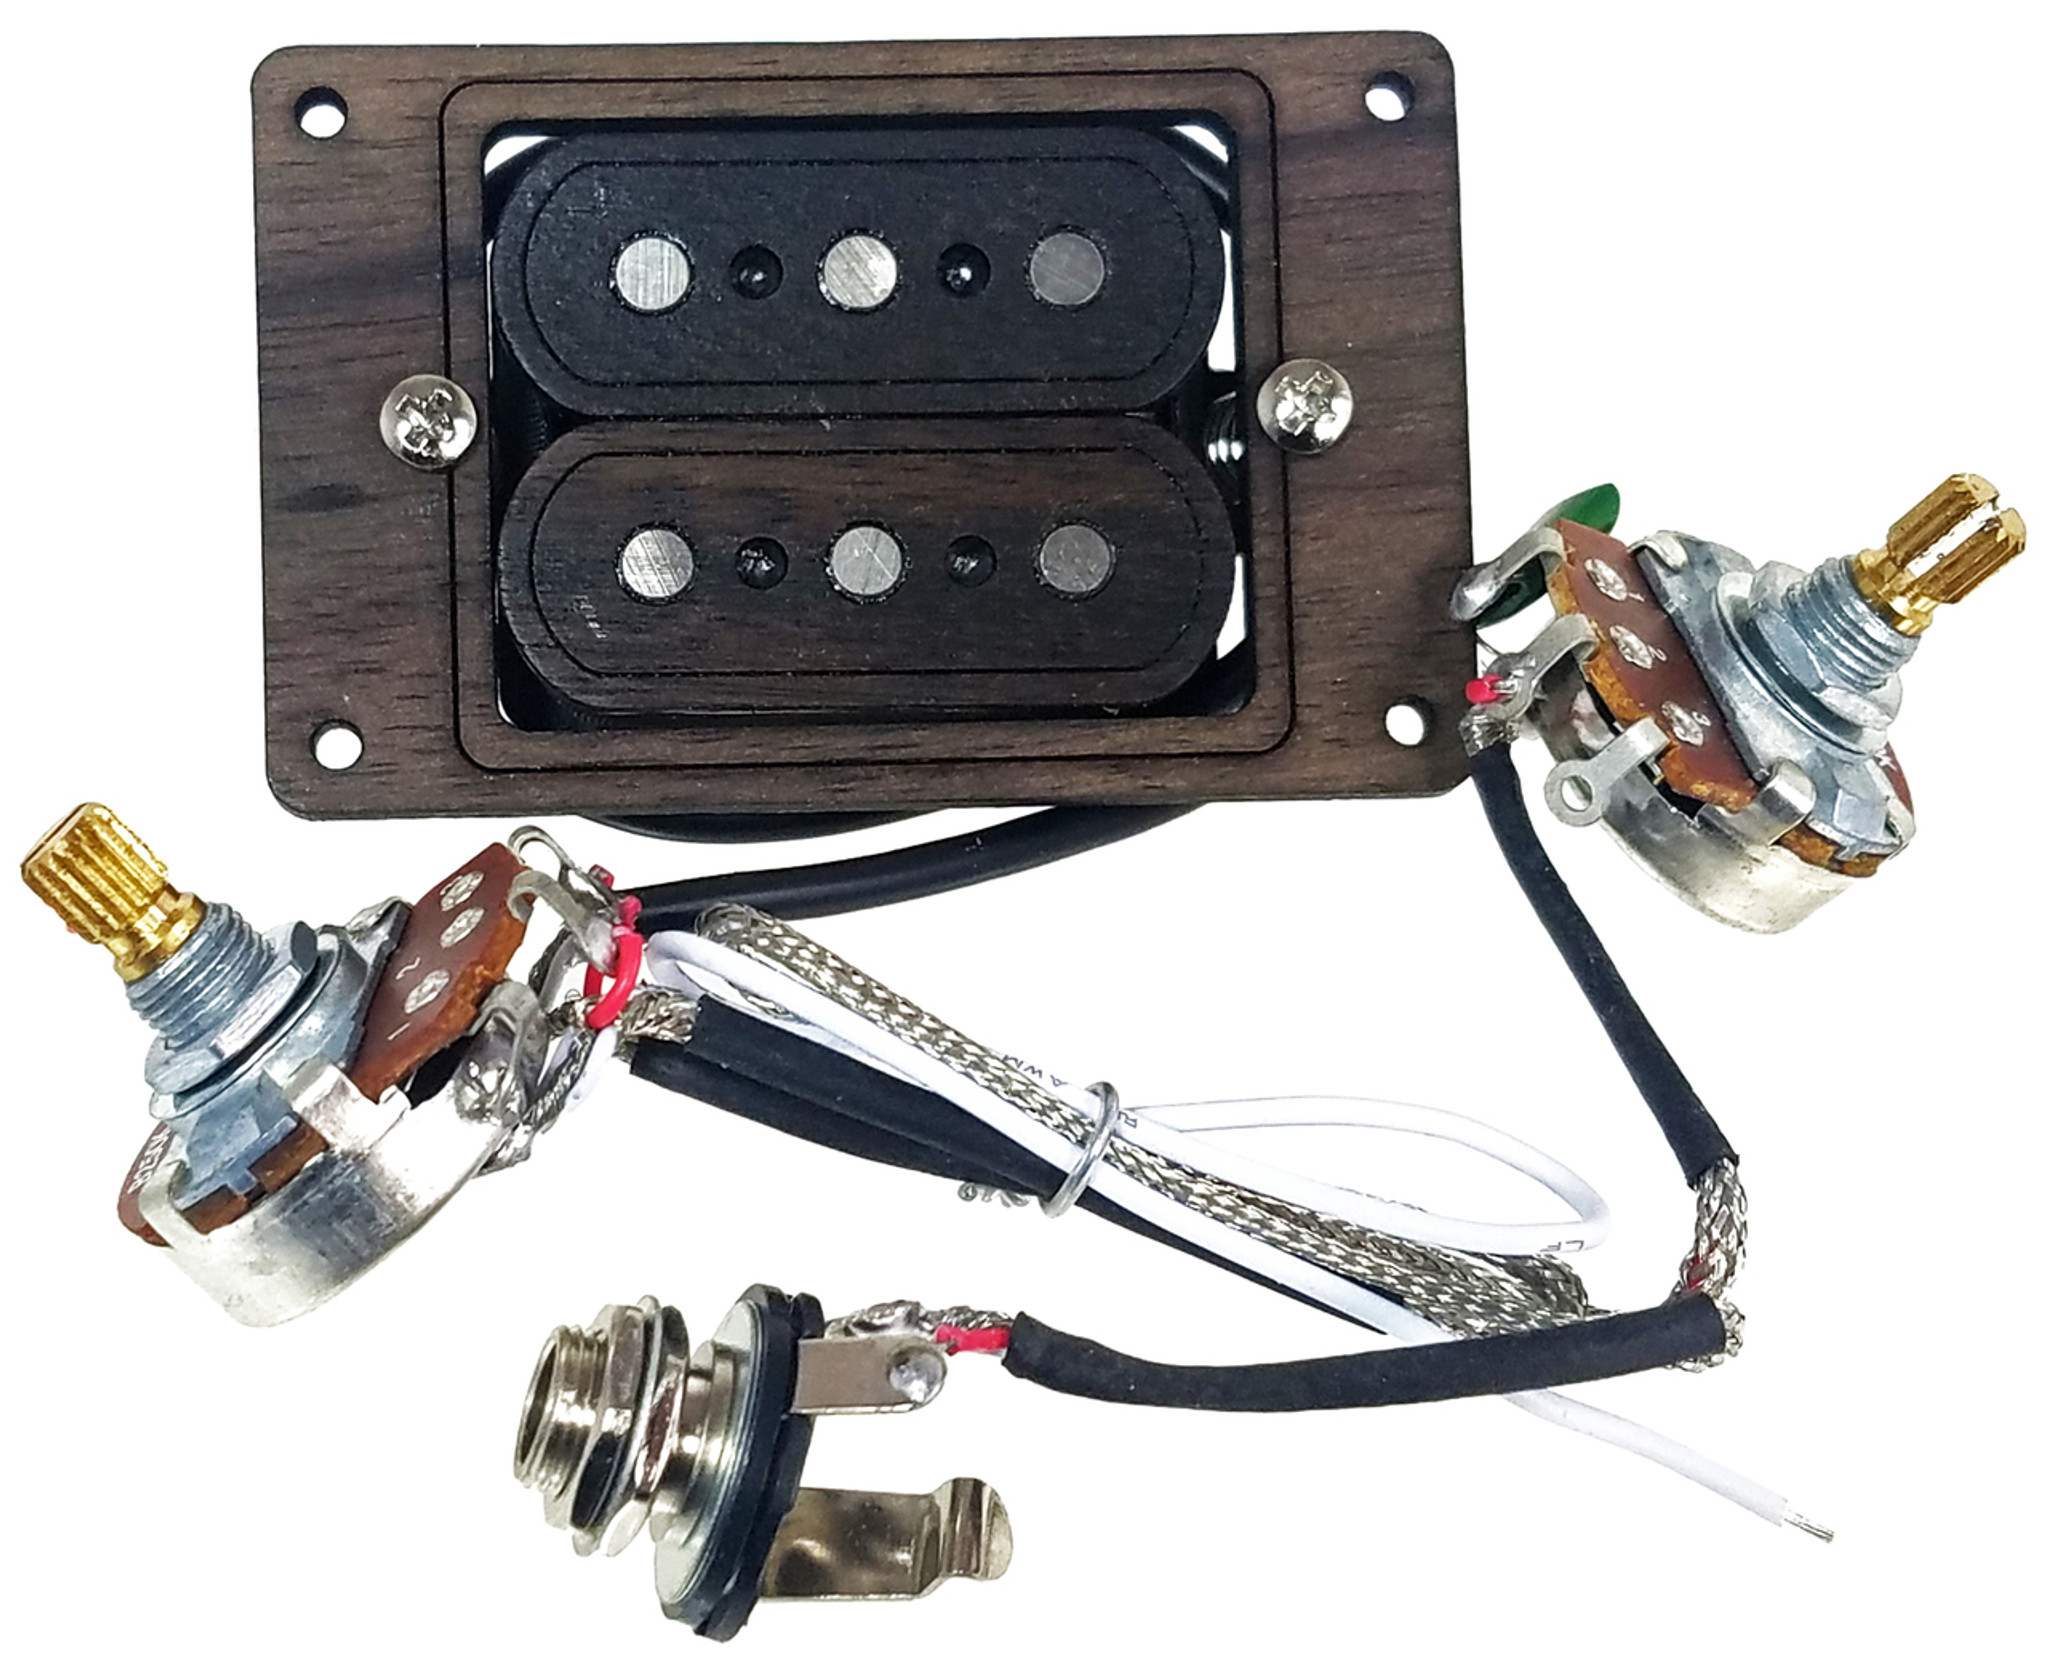 Cigar Box Amp Wiring Diagram Trusted Diagrams Electric Guitar Diy Enthusiasts U2022 Design